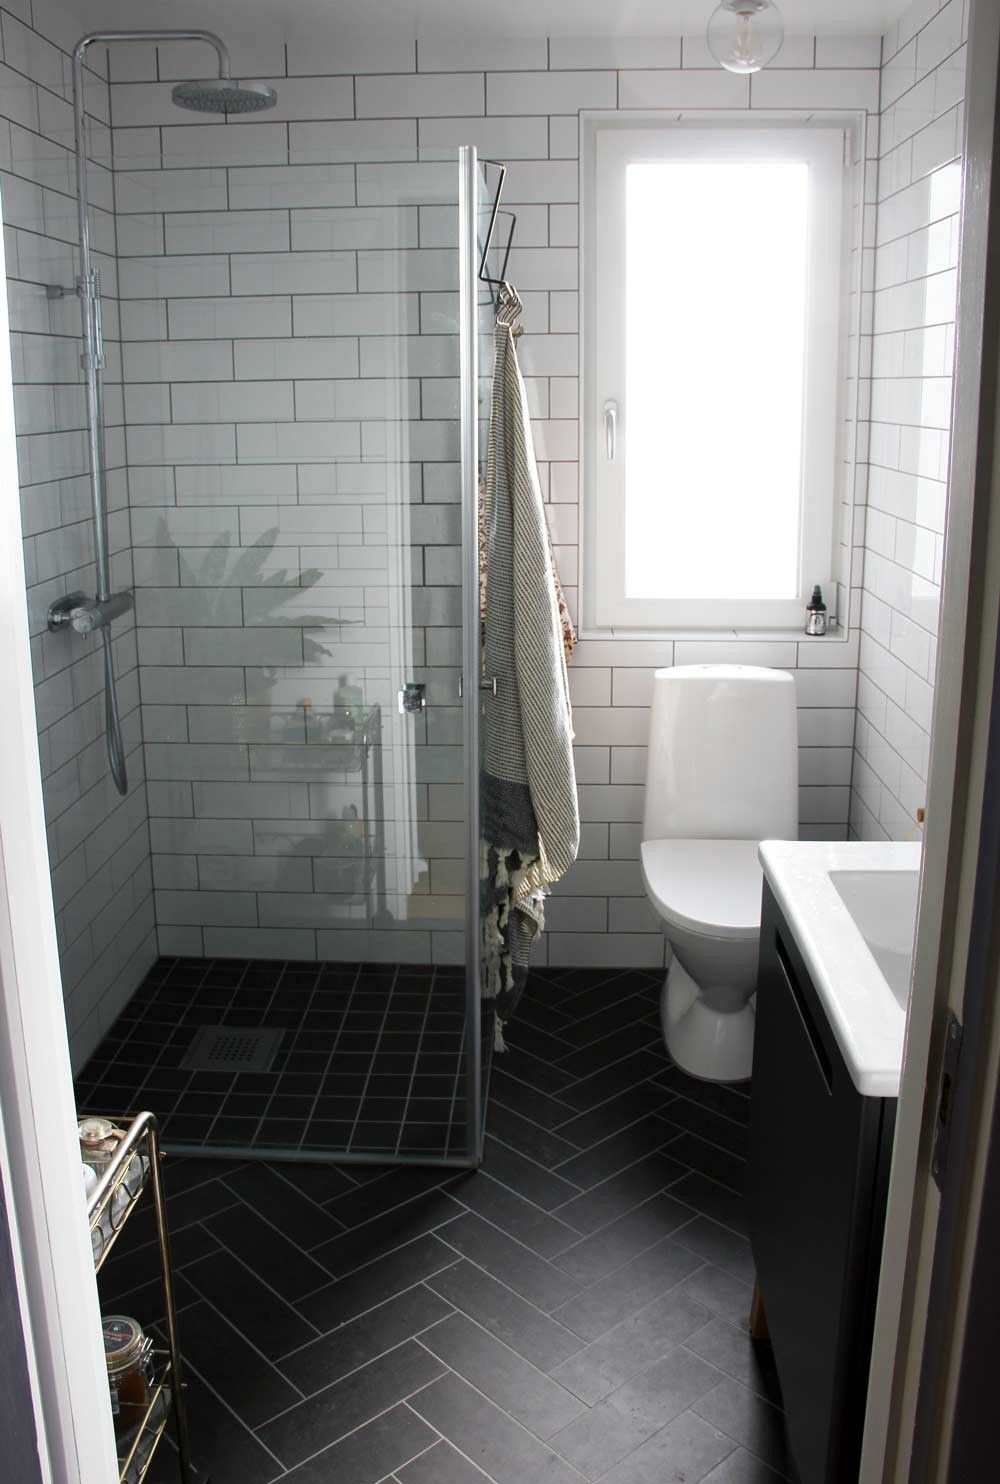 Bathroom modern this method to clean bathroom tiles is 100 times more - I Love Everything About This Bathroom The Black Herringbone Floor The White Subway Tiles